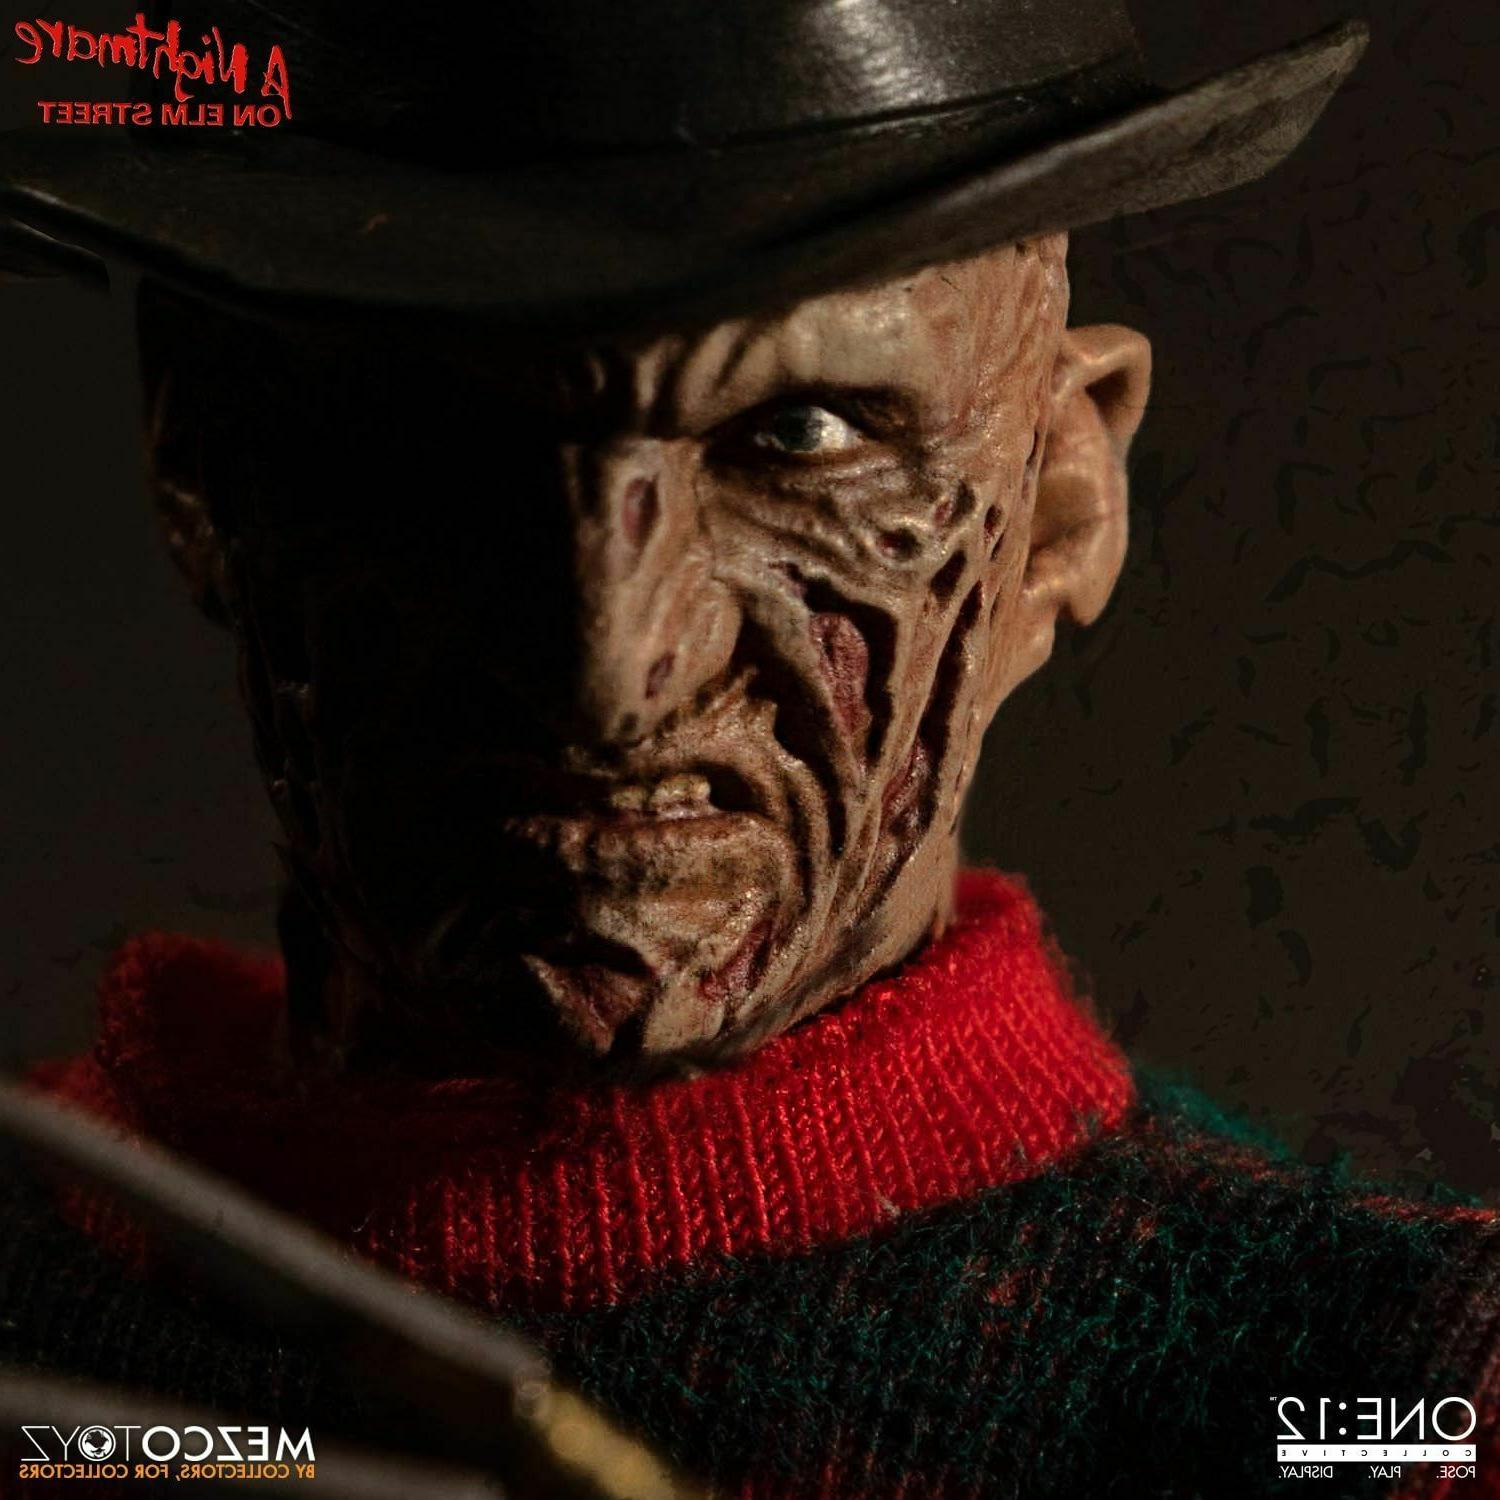 Mezco One:12 Collective Nightmare on Street Krueger Figure